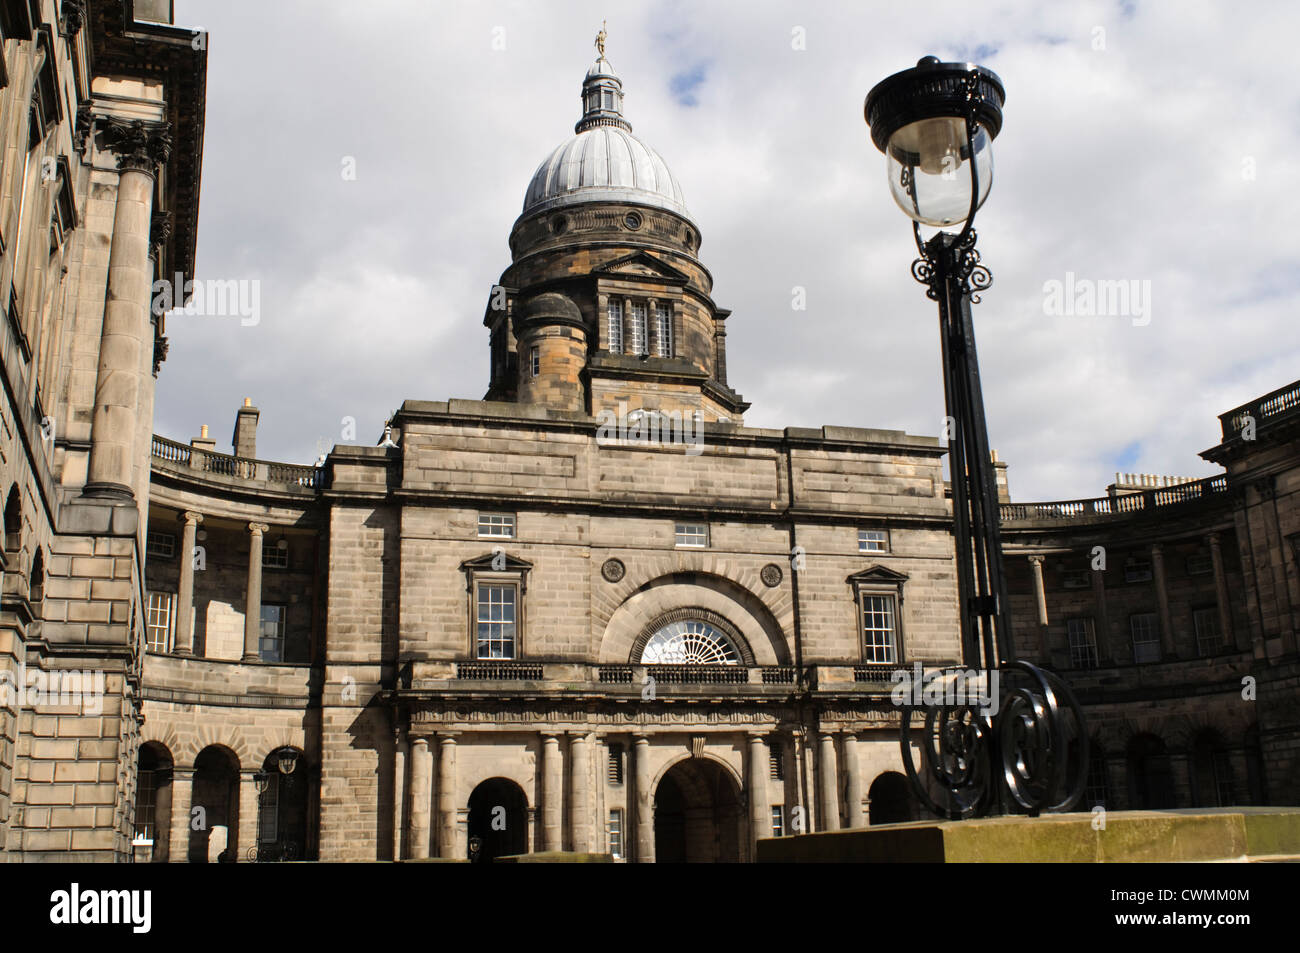 University of Edinburgh, Old College building and dome, Edinburgh. - Stock Image